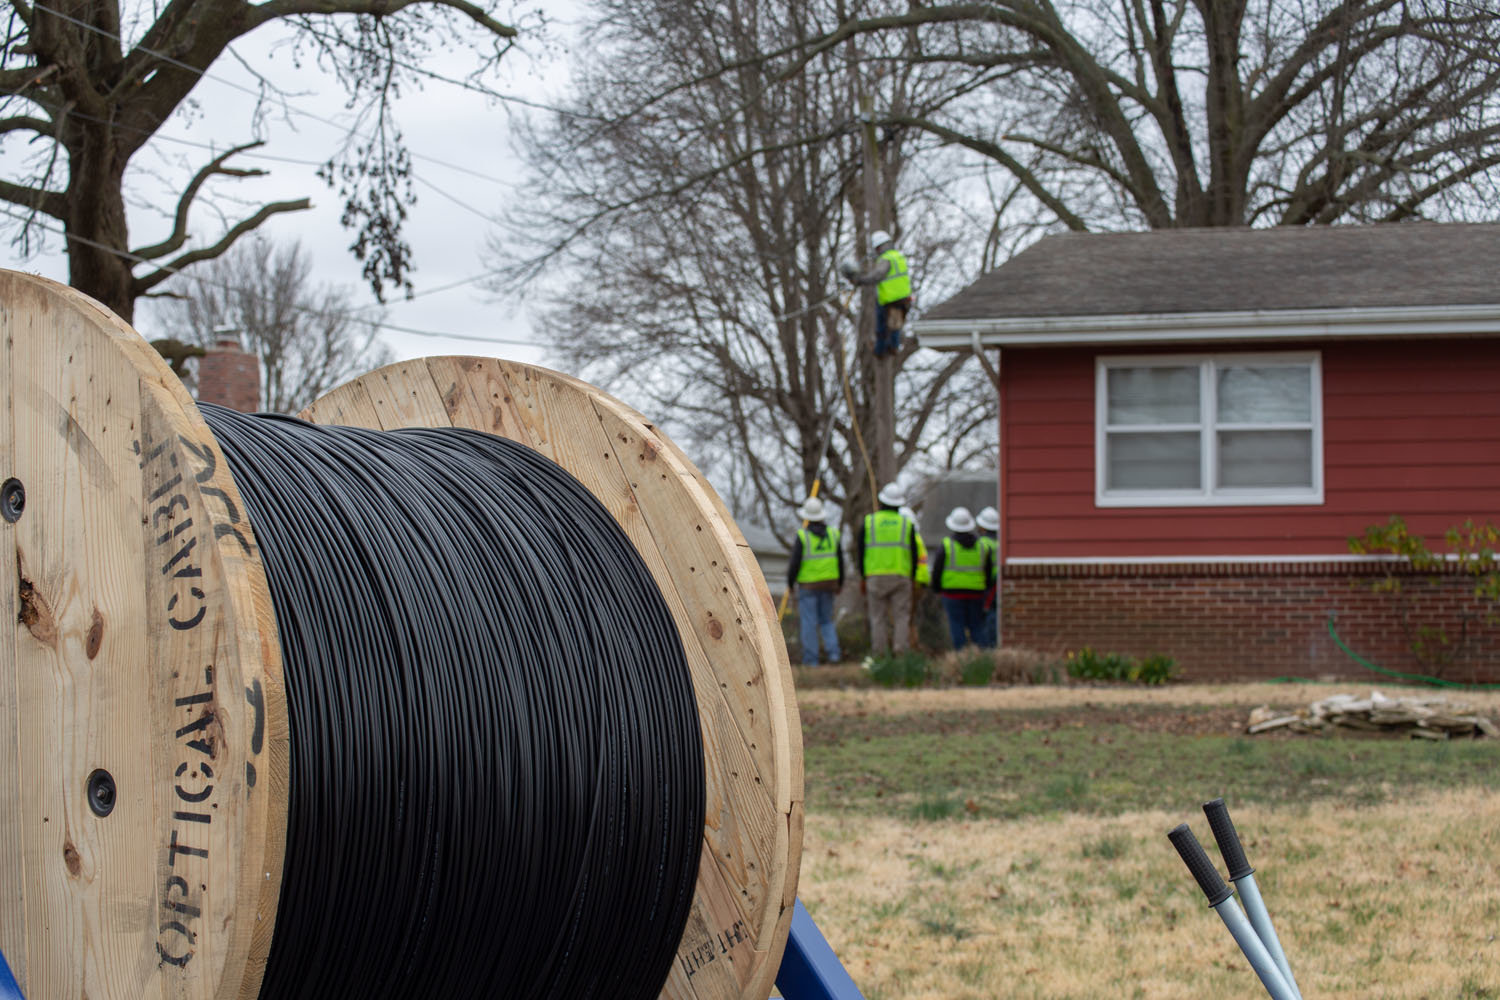 More than 1,100 new miles of fiber-optic lines are in the process of being installed throughout Springfield.